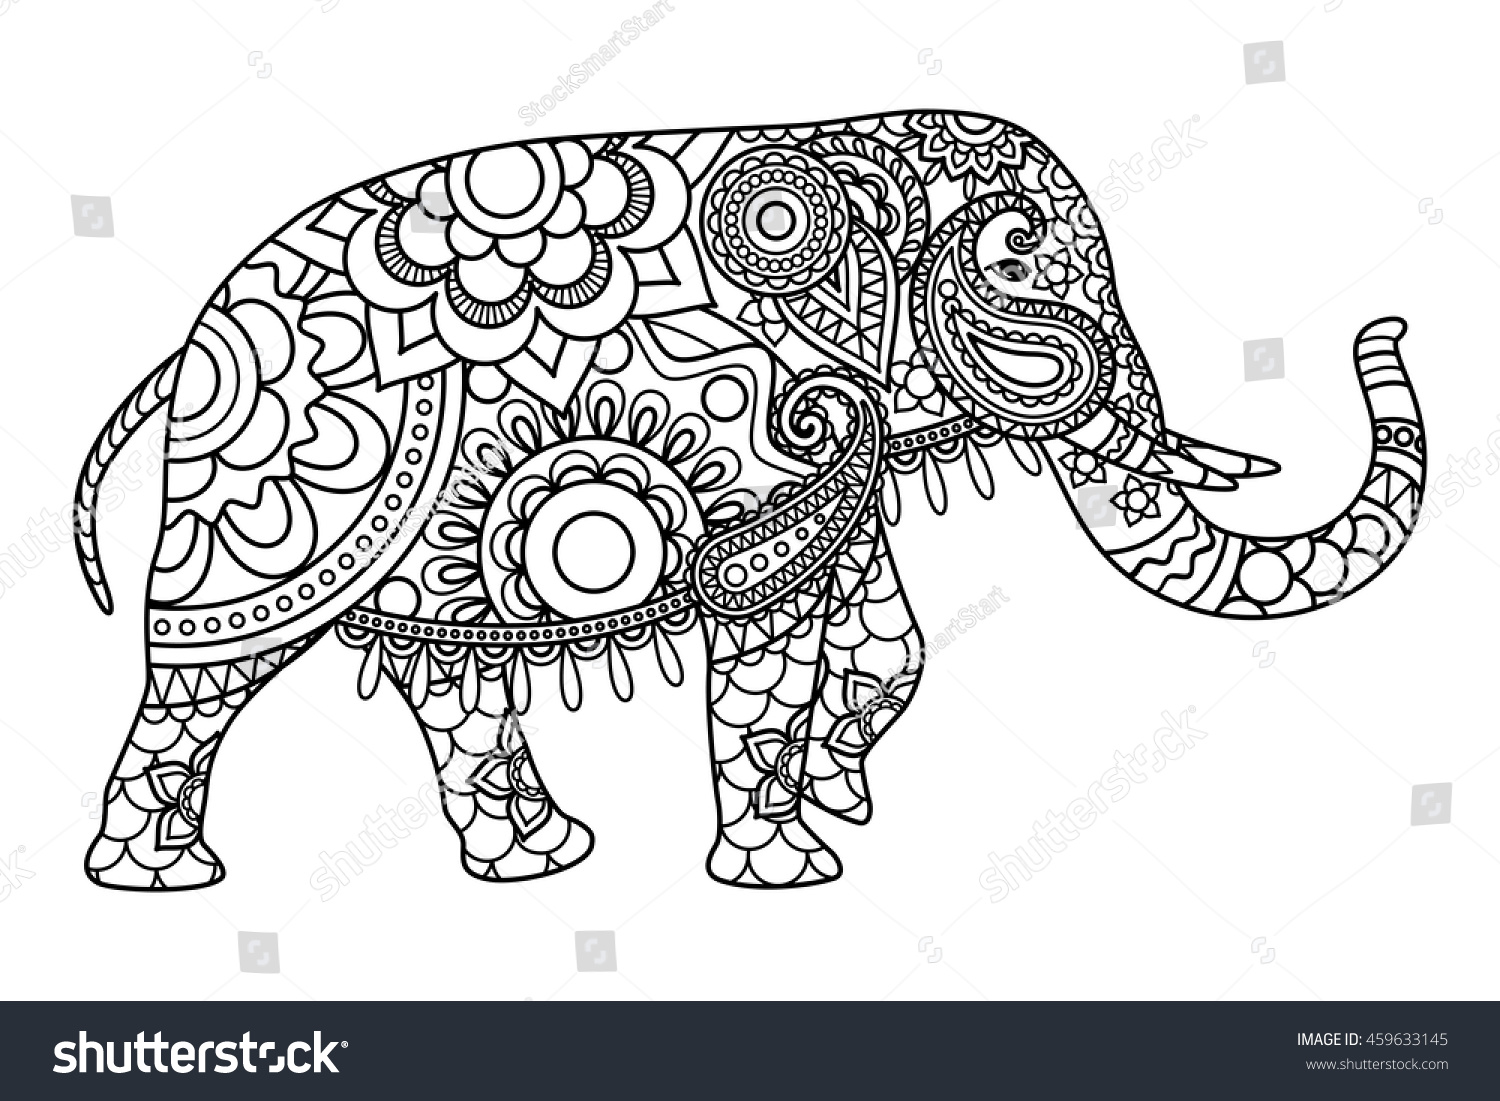 Indian Elephant Coloring Pages Template Vector Stock Vector ...